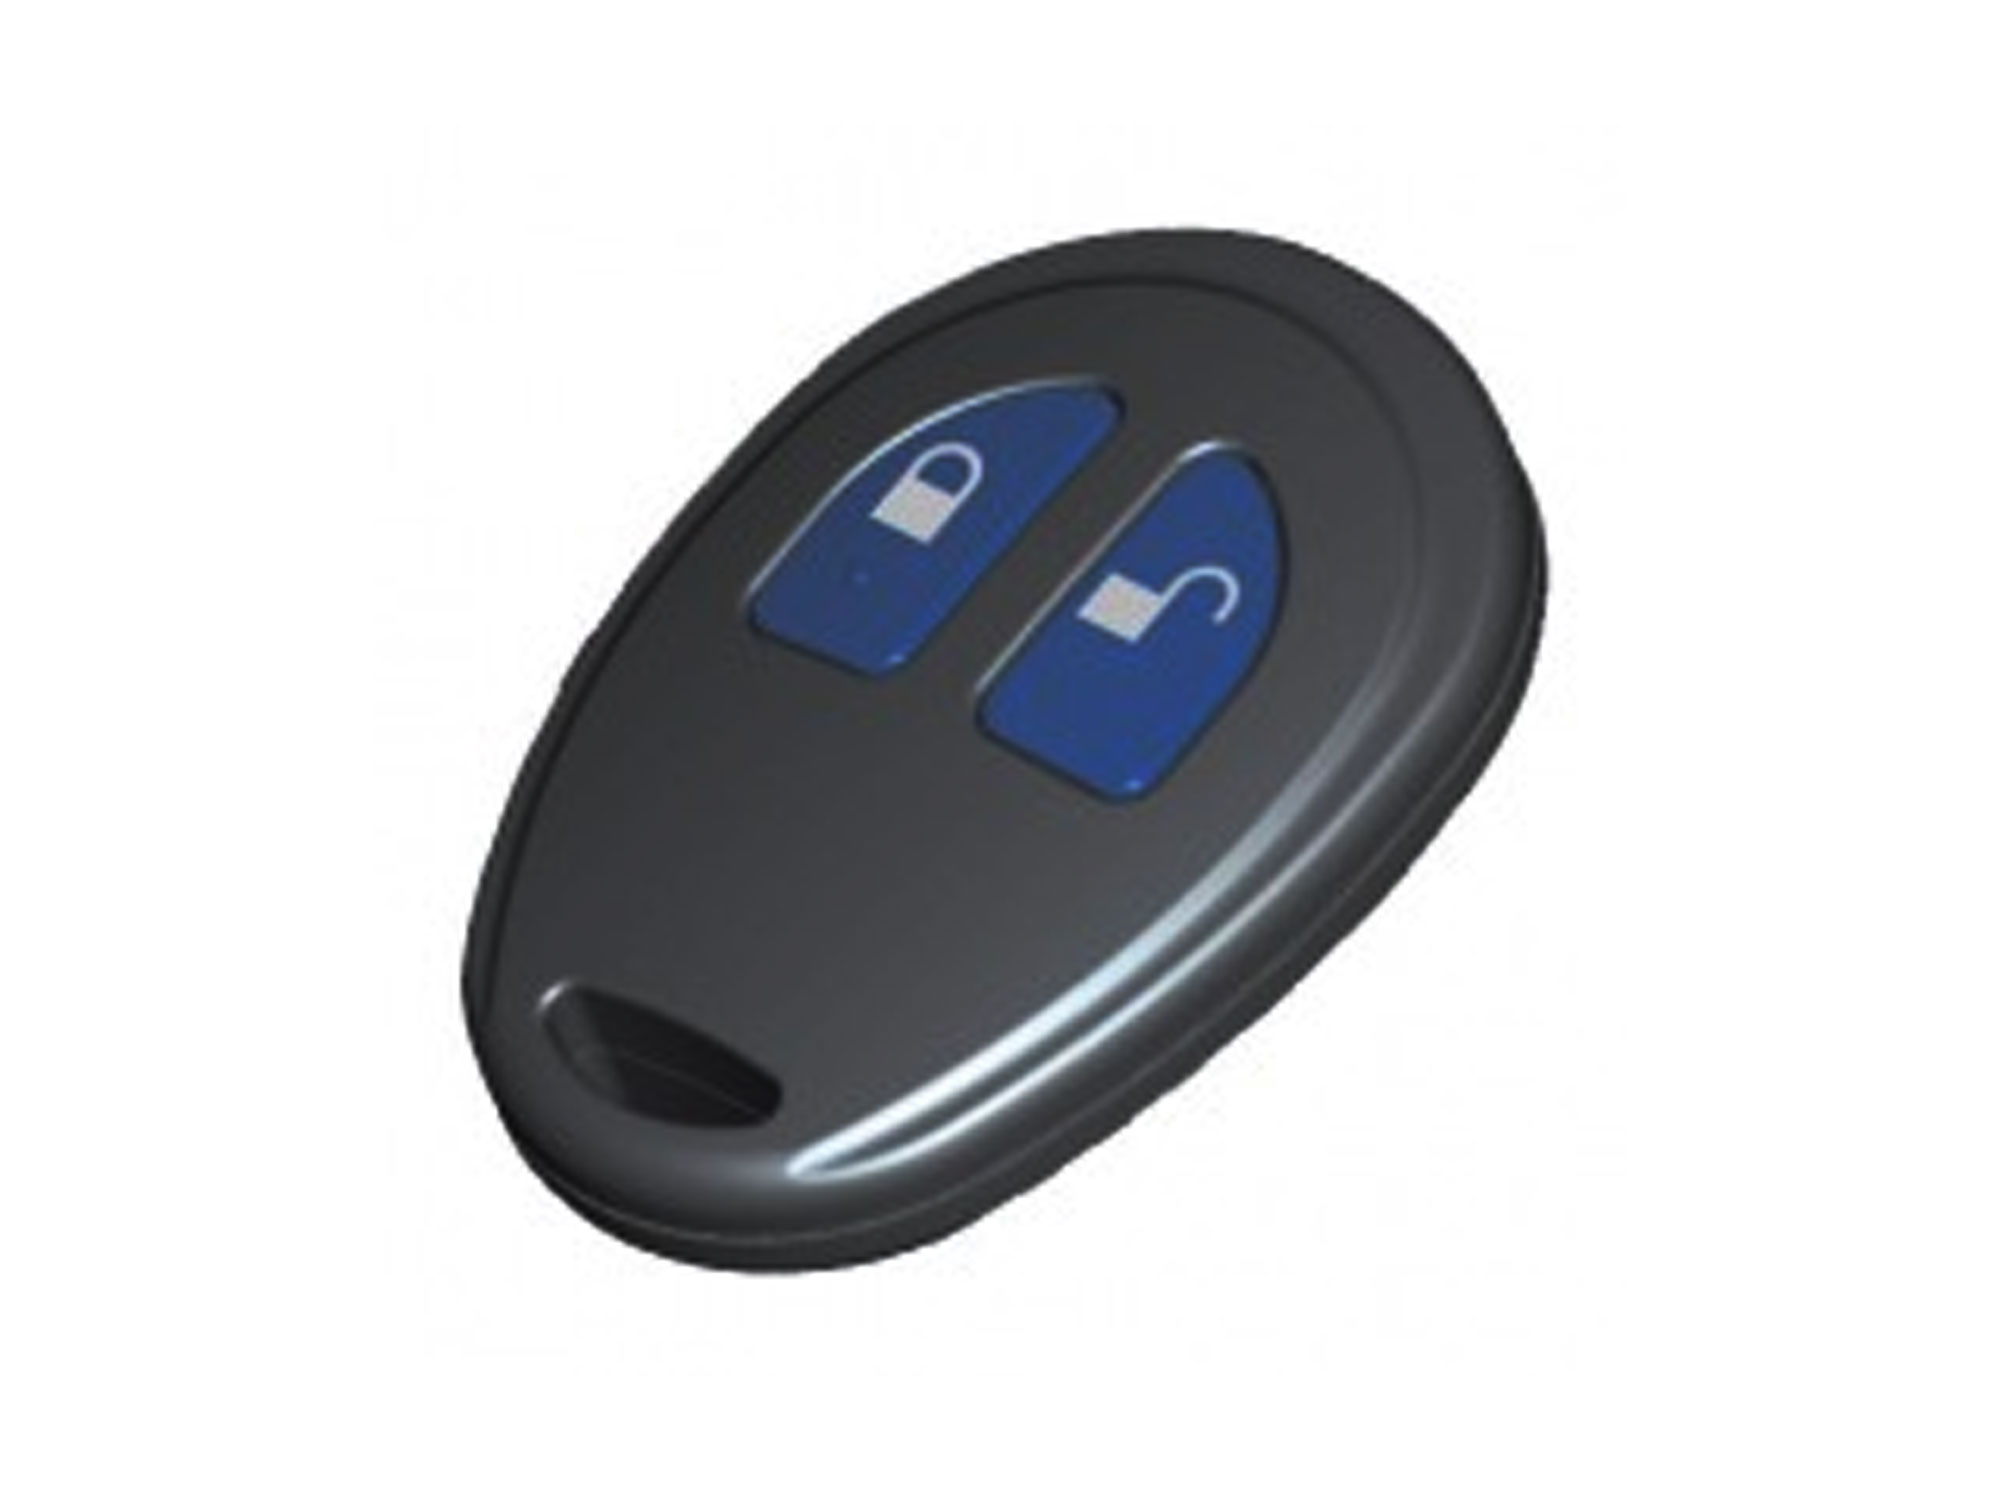 Lockey Remote KeyFob (for E910, E915, E930, E985, E995)